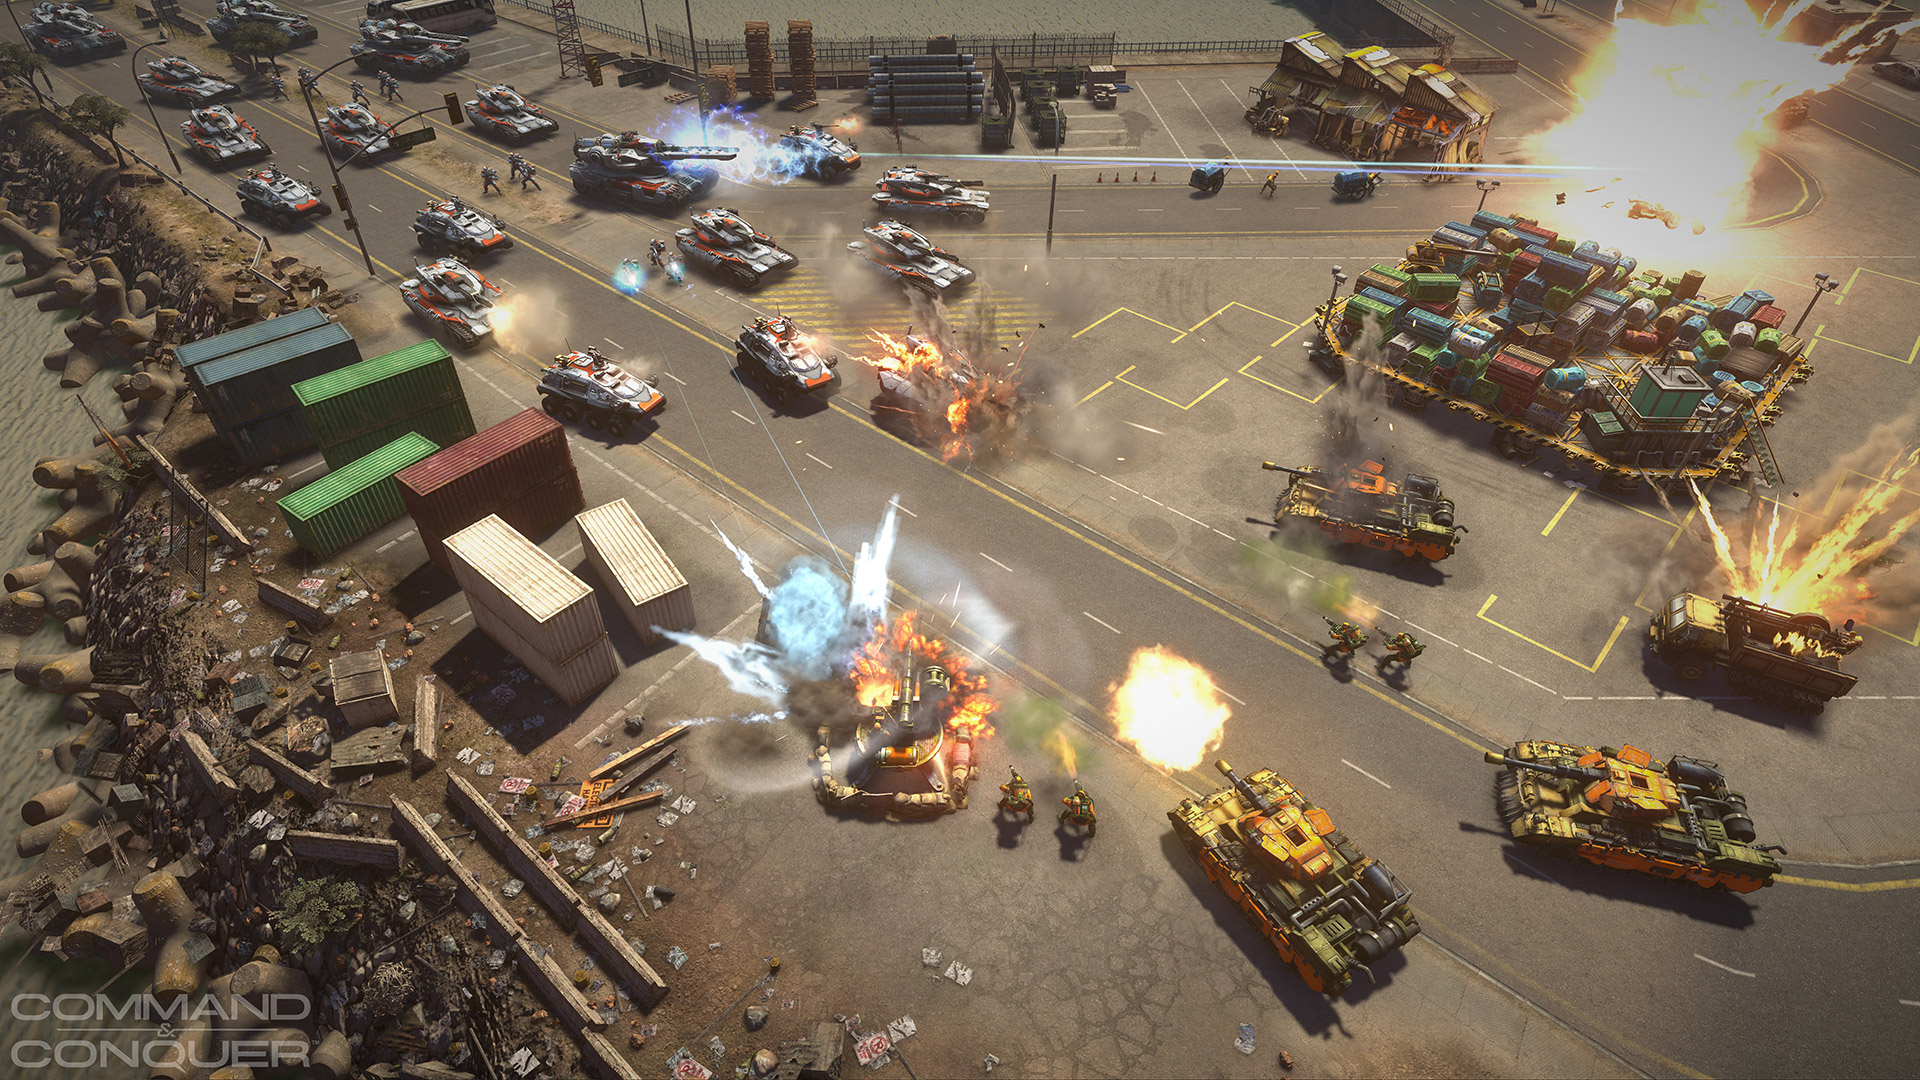 Command and conquer: generals 2.